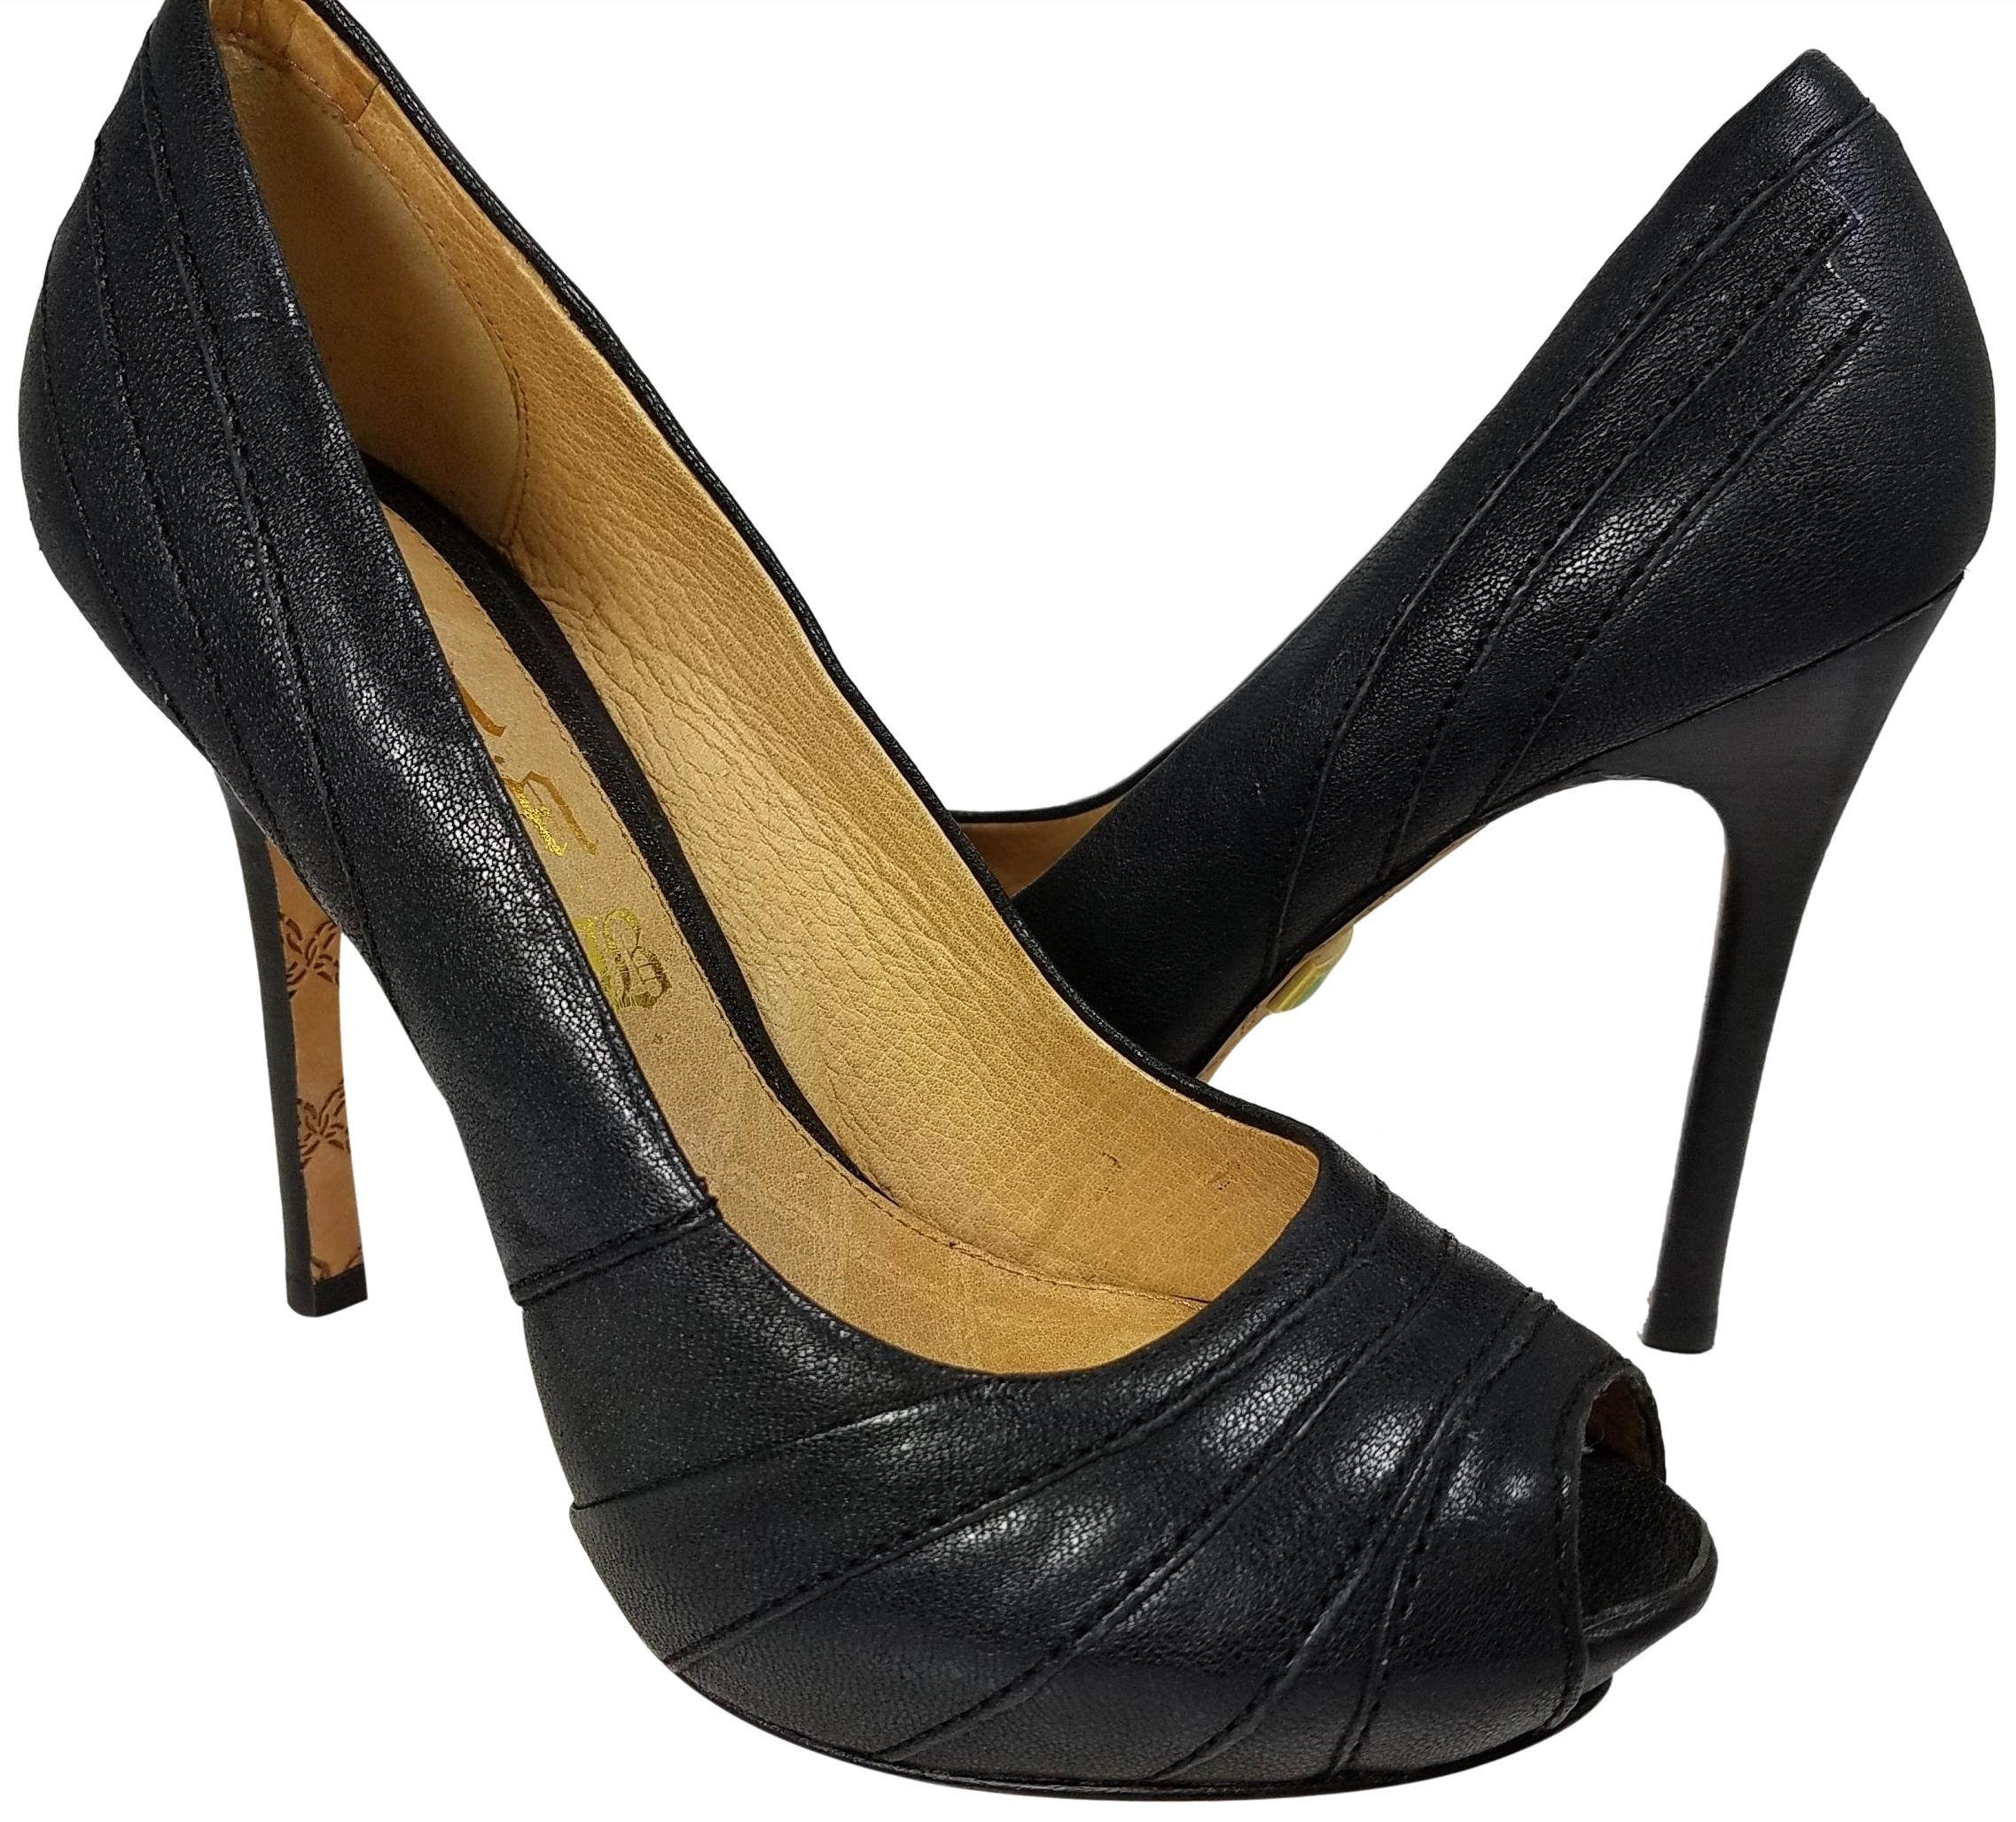 LAMB Platform Peep-Toe Pumps under $60 high quality cheap price outlet purchase for sale cheap price from china U3oNg